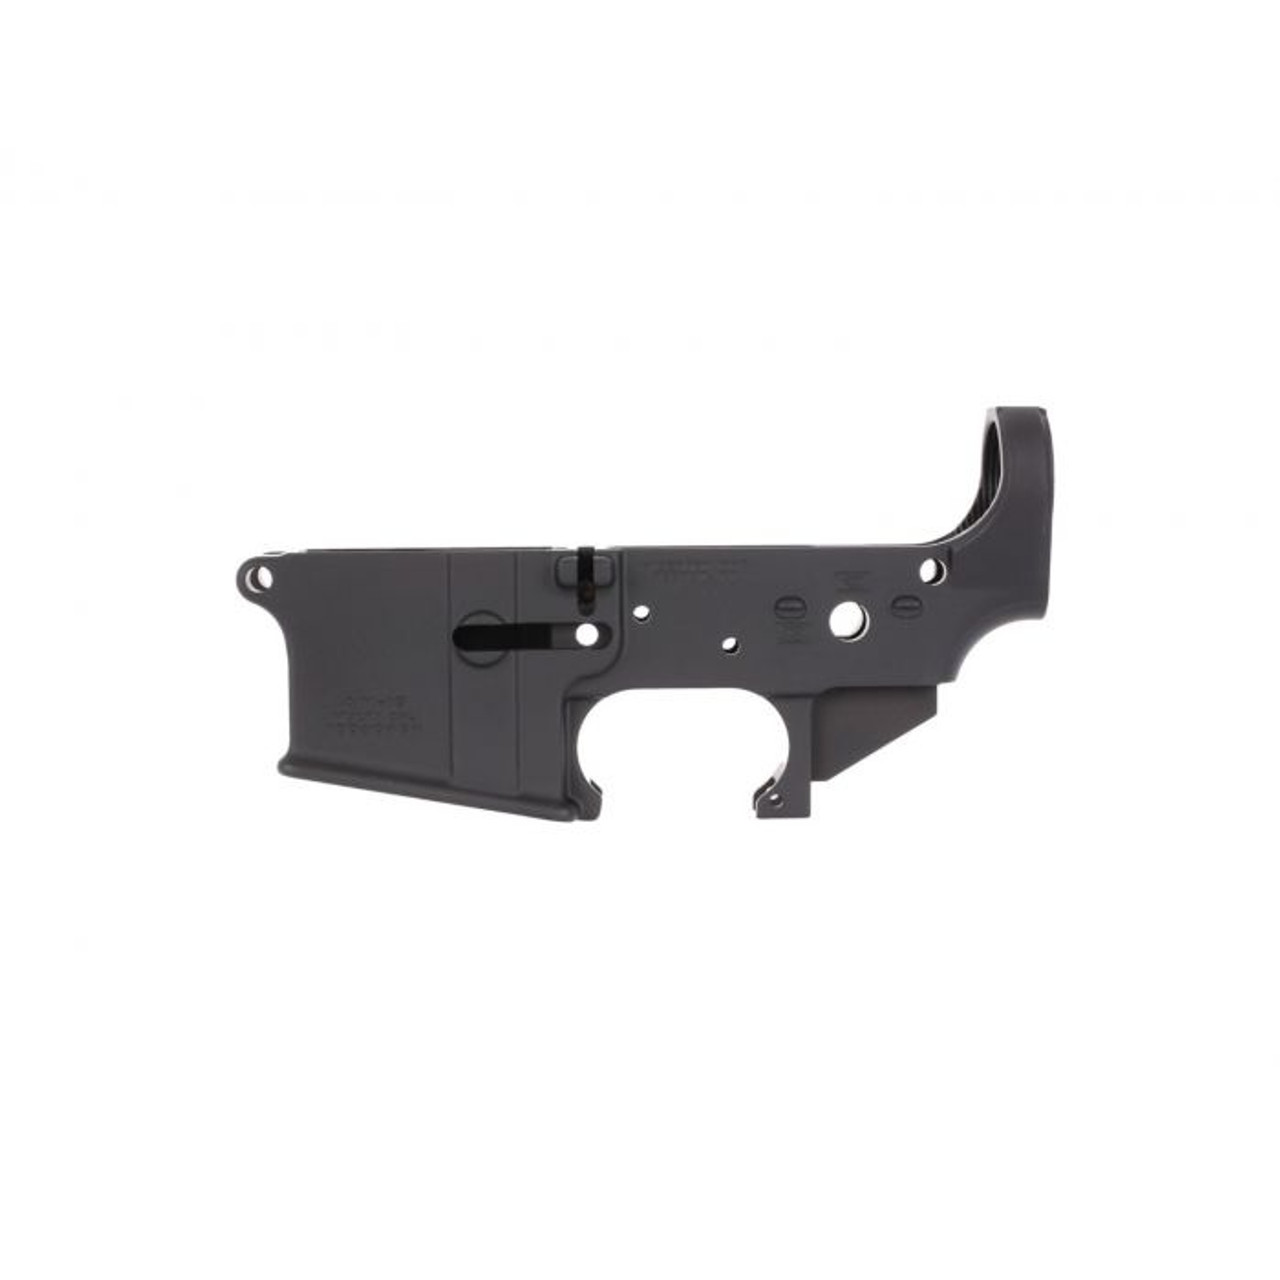 Anderson Mfg AM-15 Stealth Stripped Lower CALIFORNIA LEGAL - .223/5.56